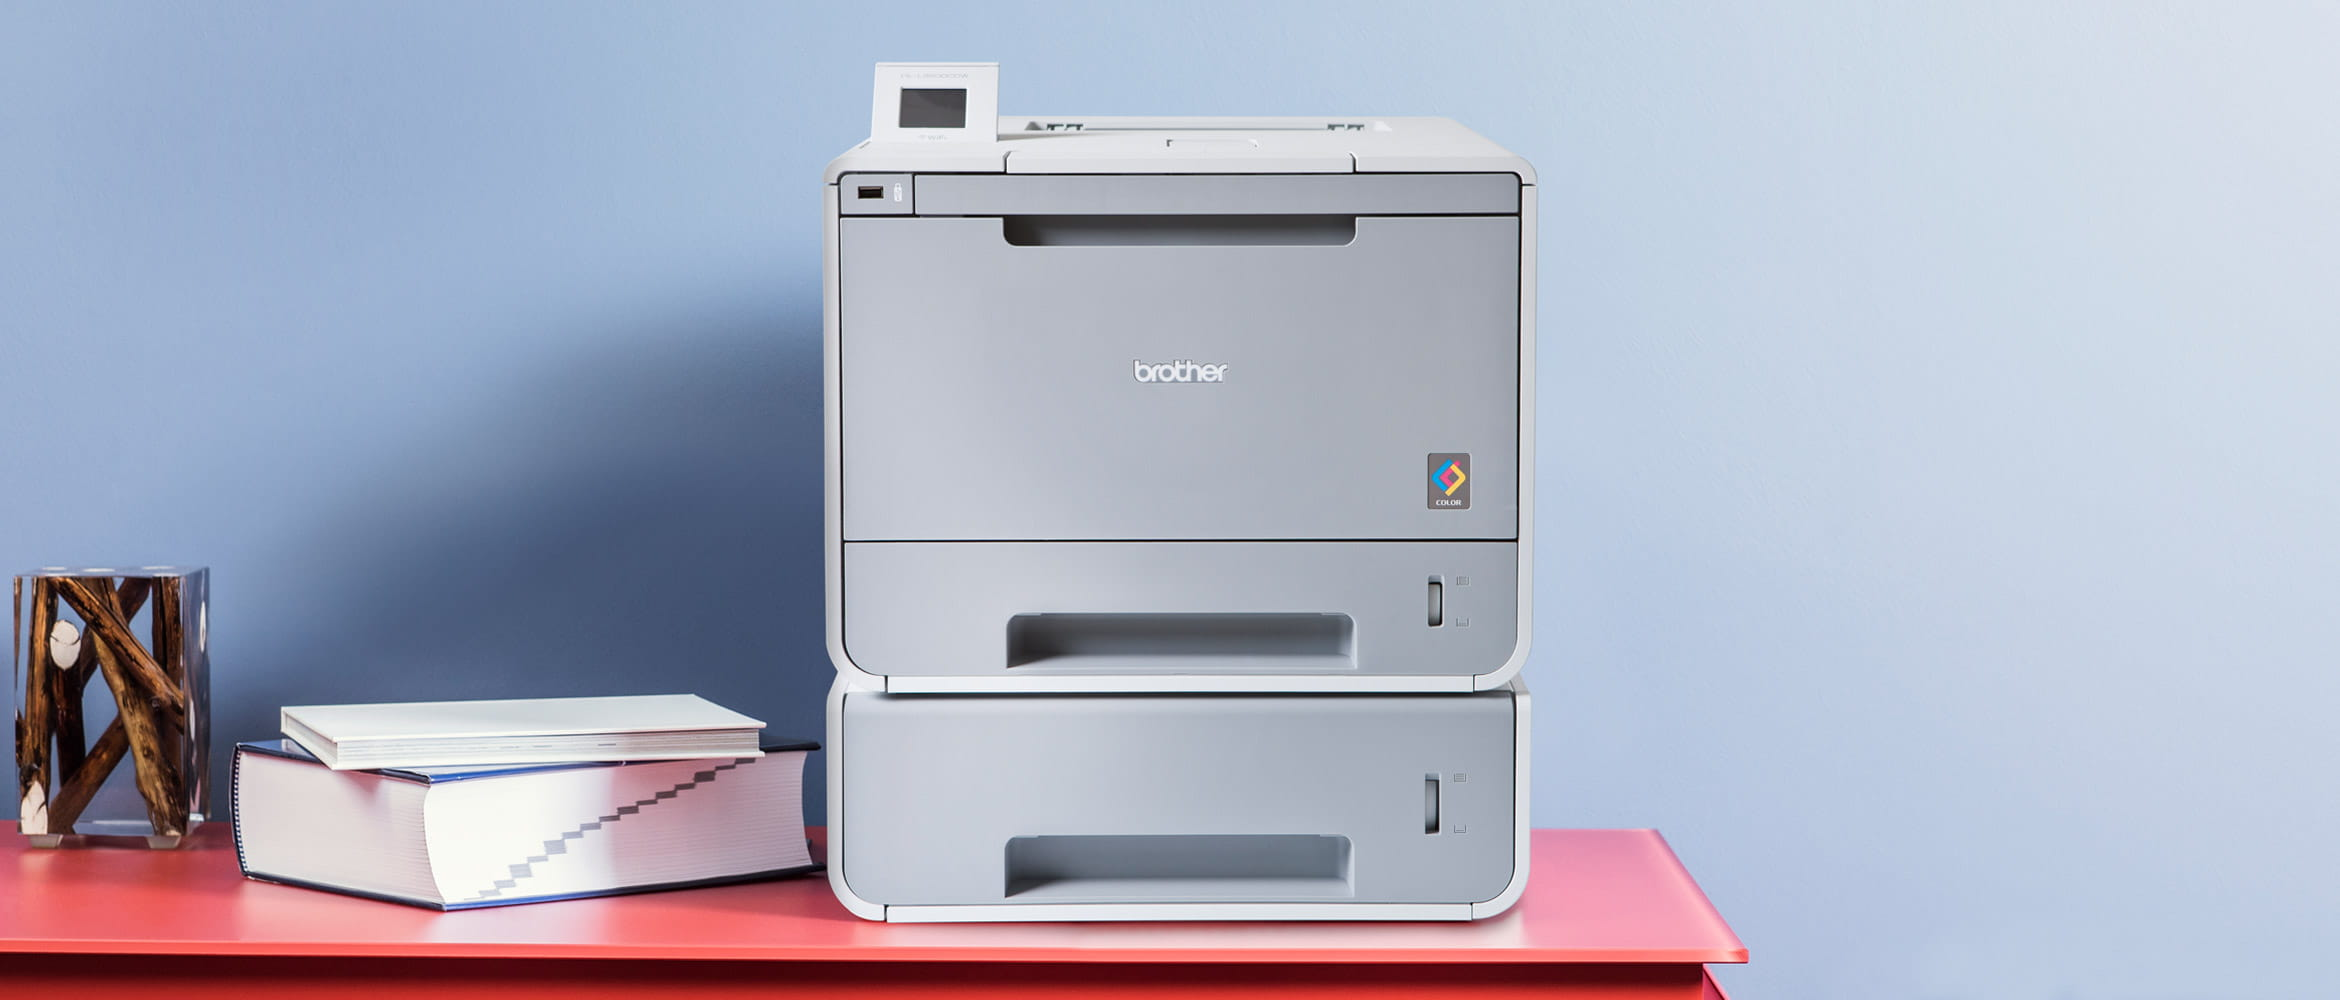 Brother Colour Laser Printer next to office supplies on a red desk